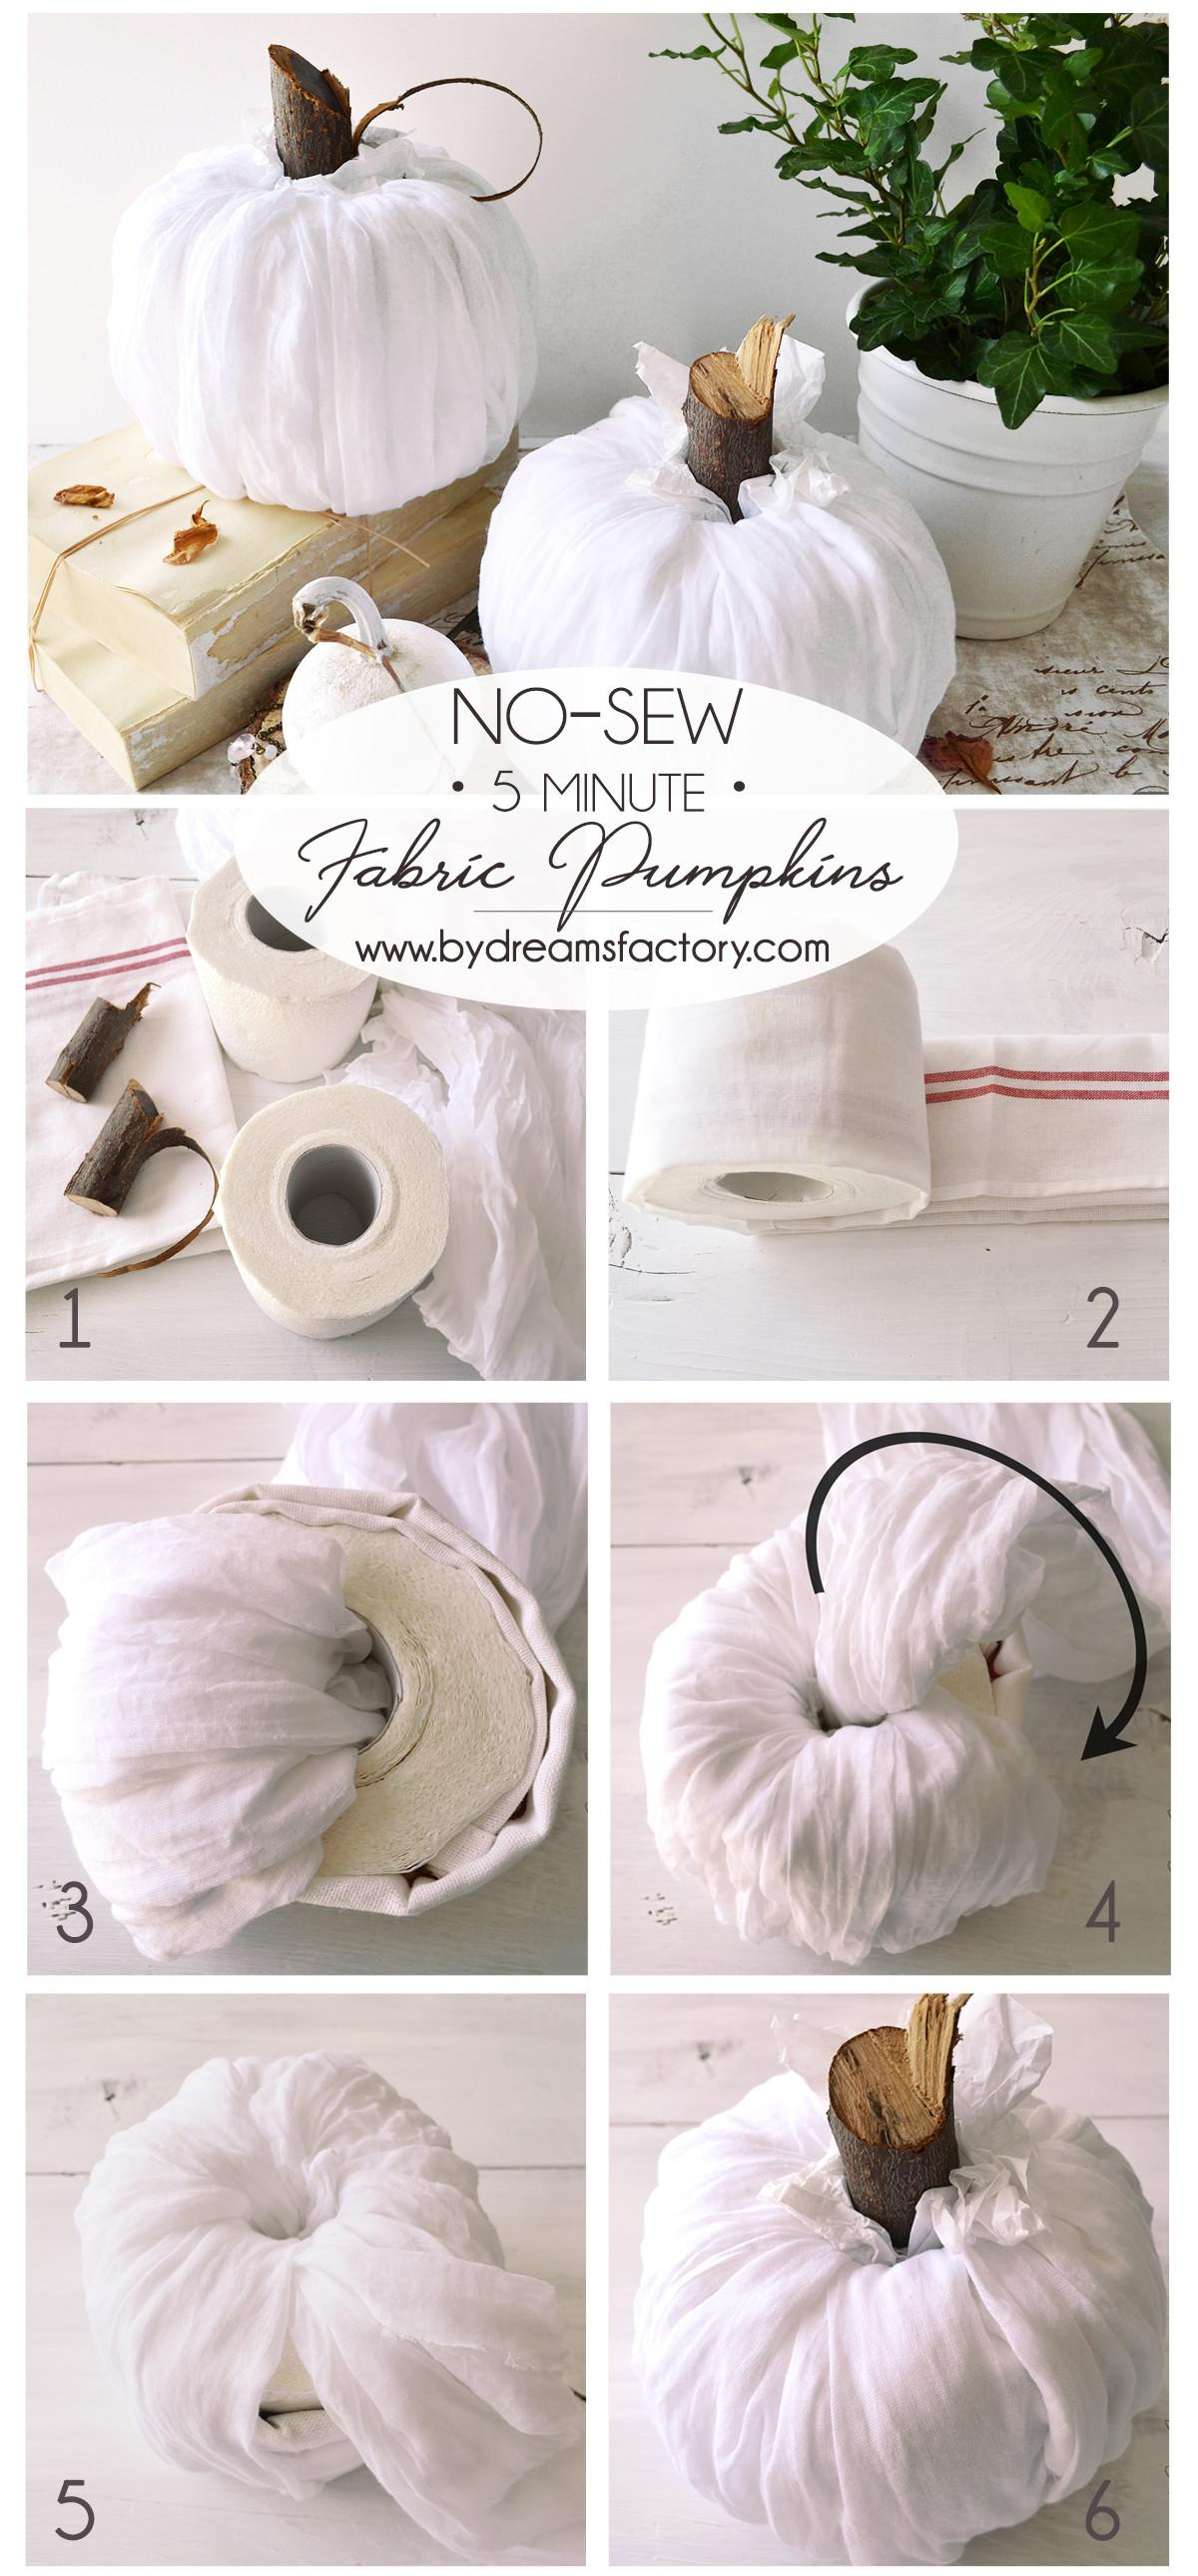 Diy Sew Fabric Pumpkins Ready Minutes